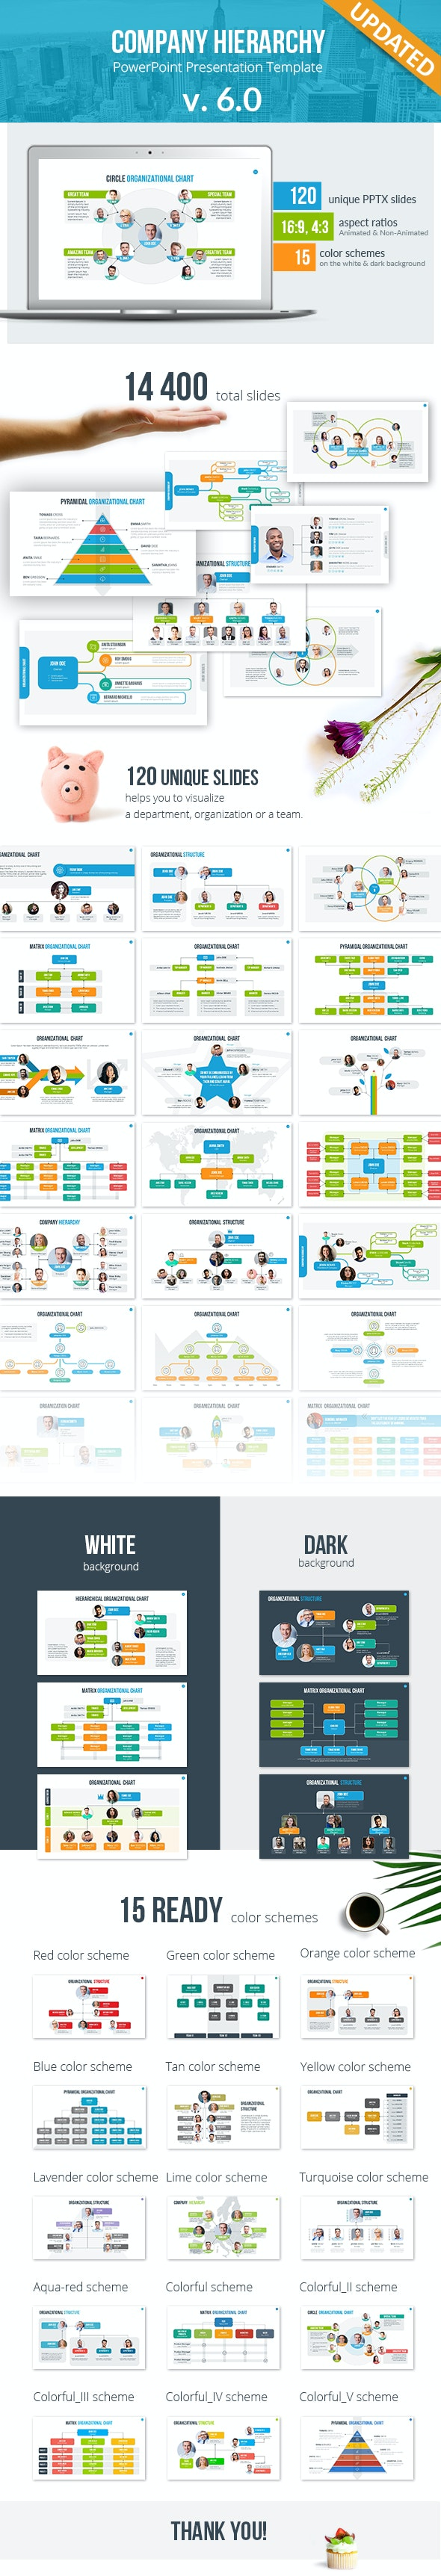 Organizational Chart and Hierarchy PowerPoint Presentation Template - Business PowerPoint Templates